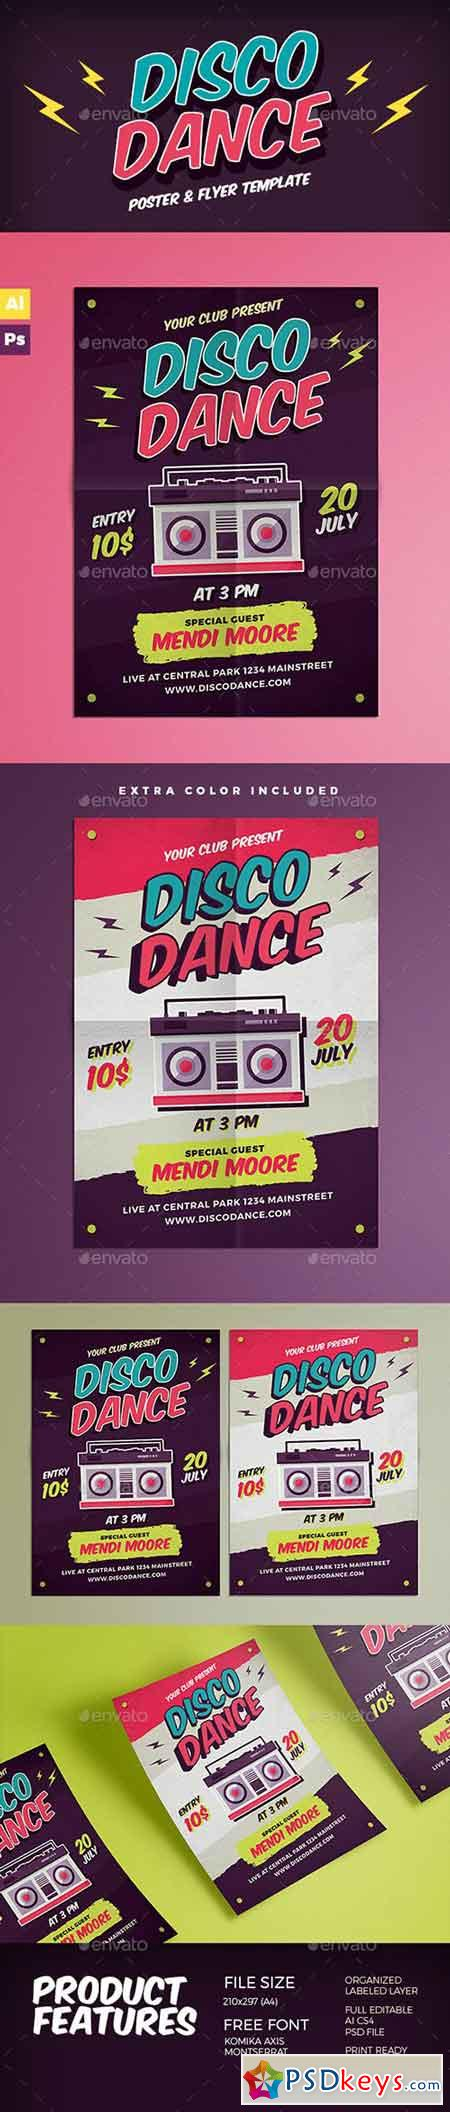 Disco Dance Poster Flyer 15608465